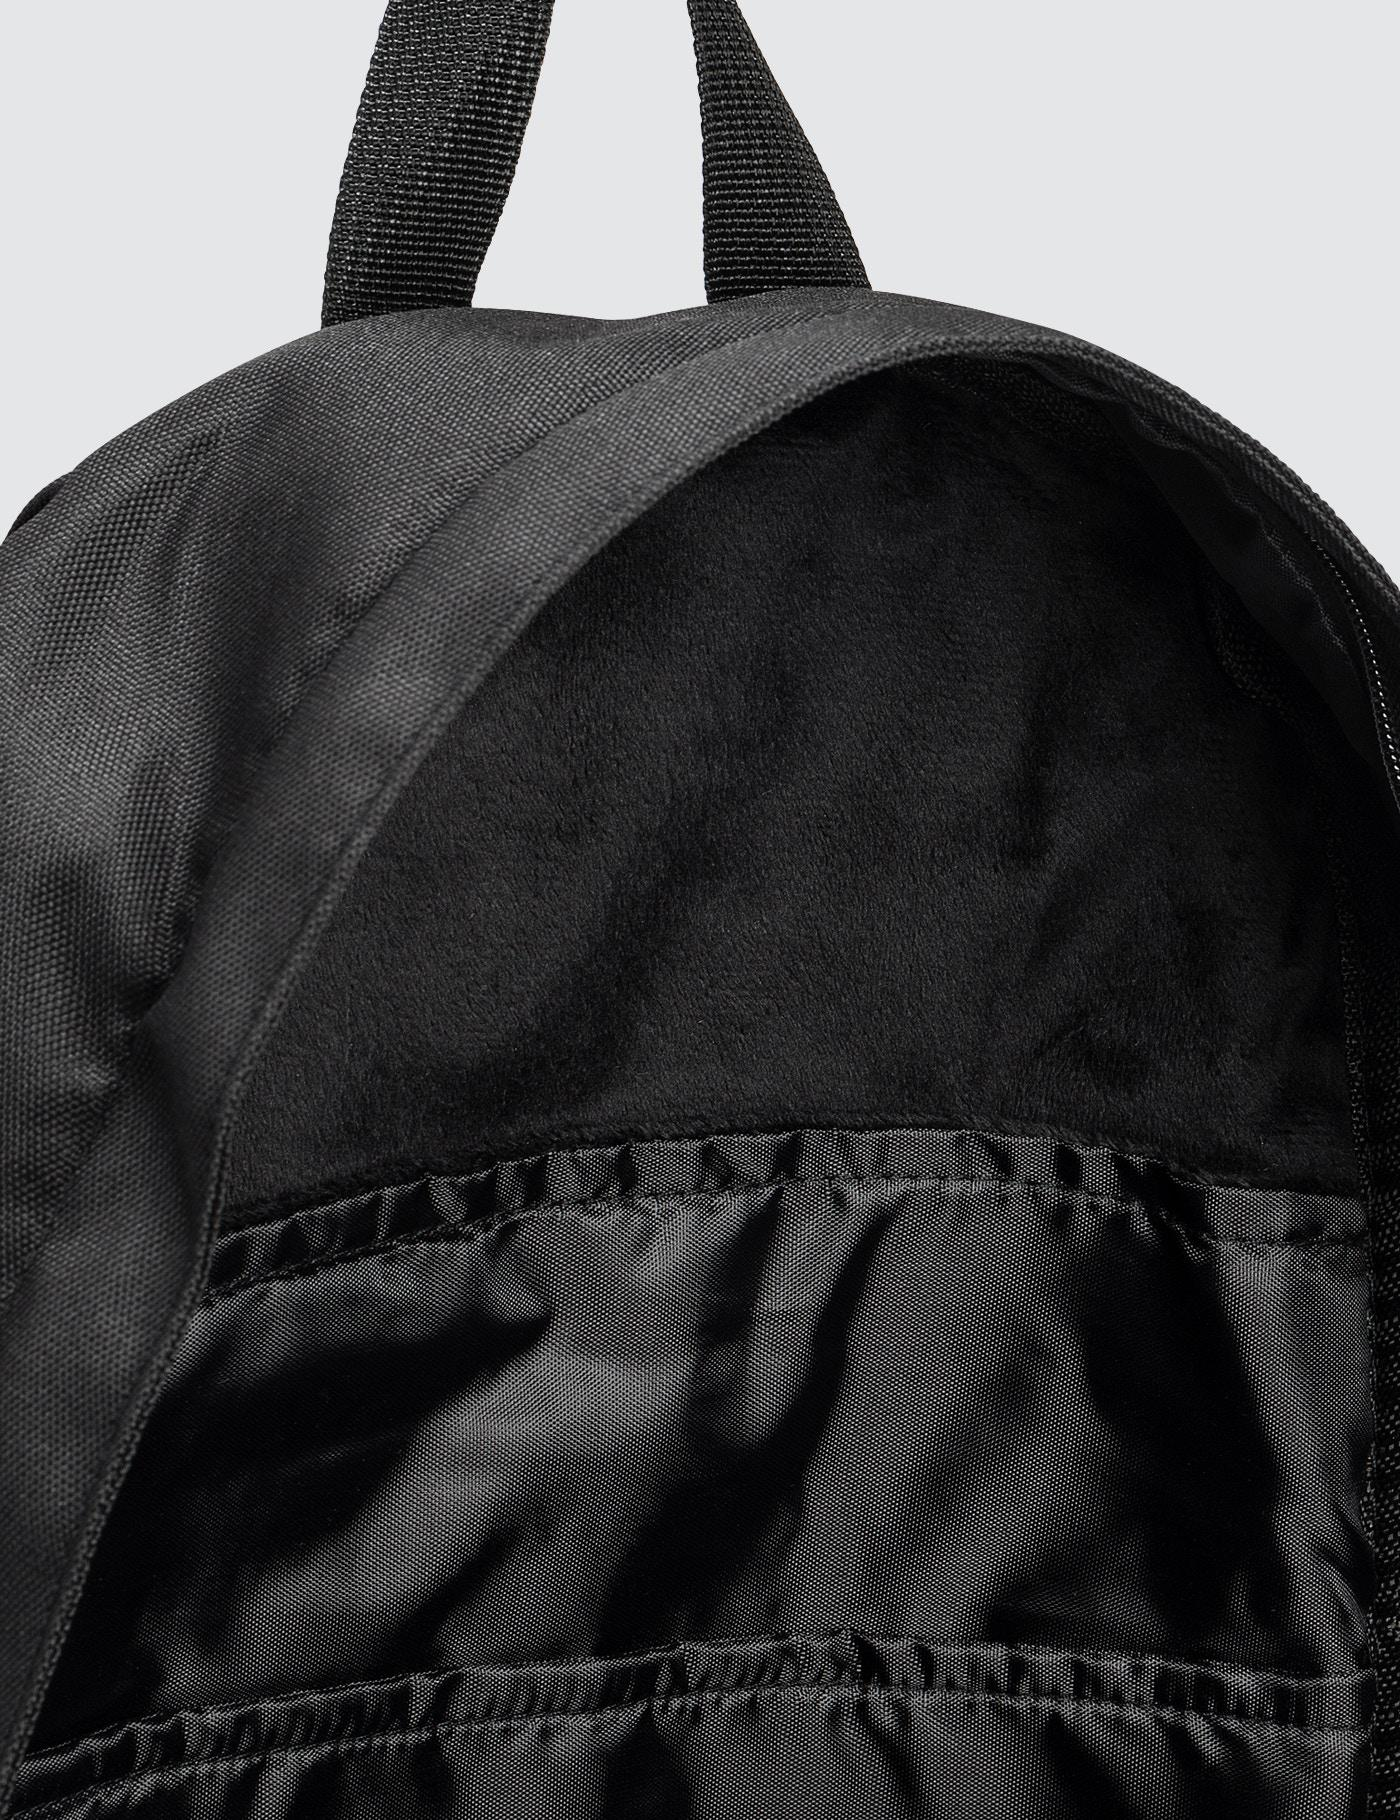 Huf Synthetic Utility Backpack in Black for Men